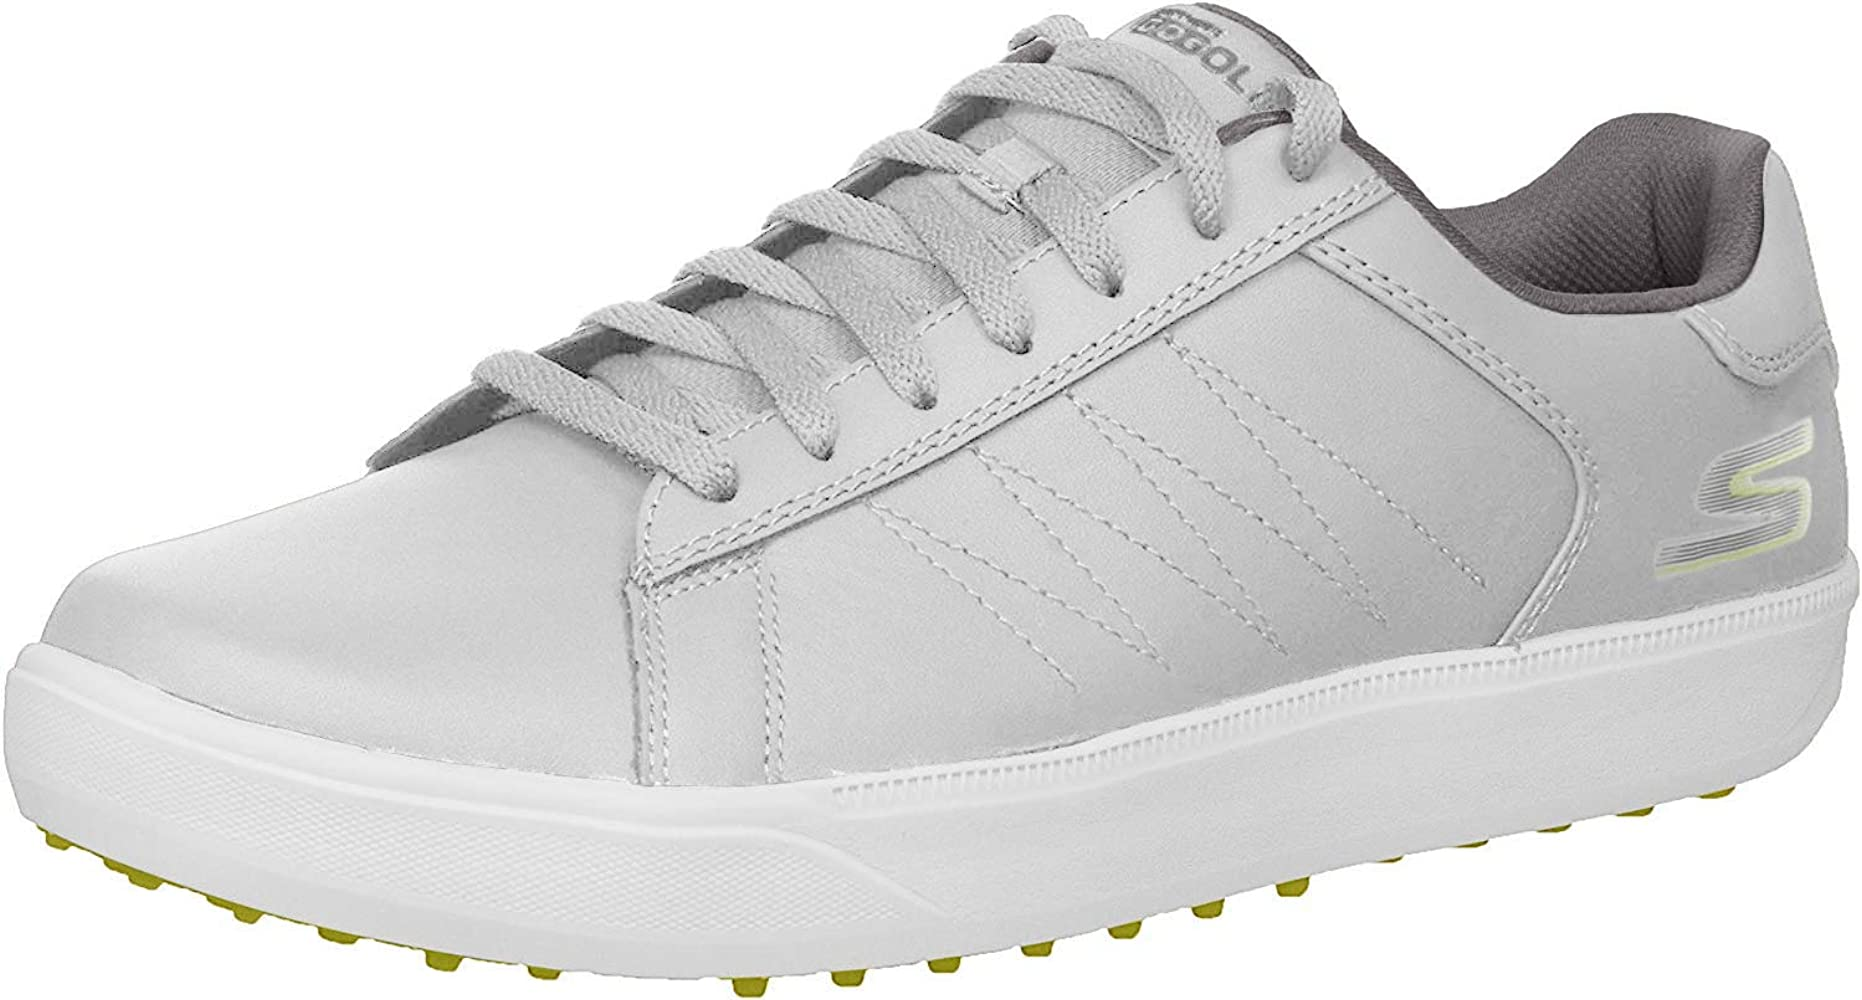 bo knows golf shoes